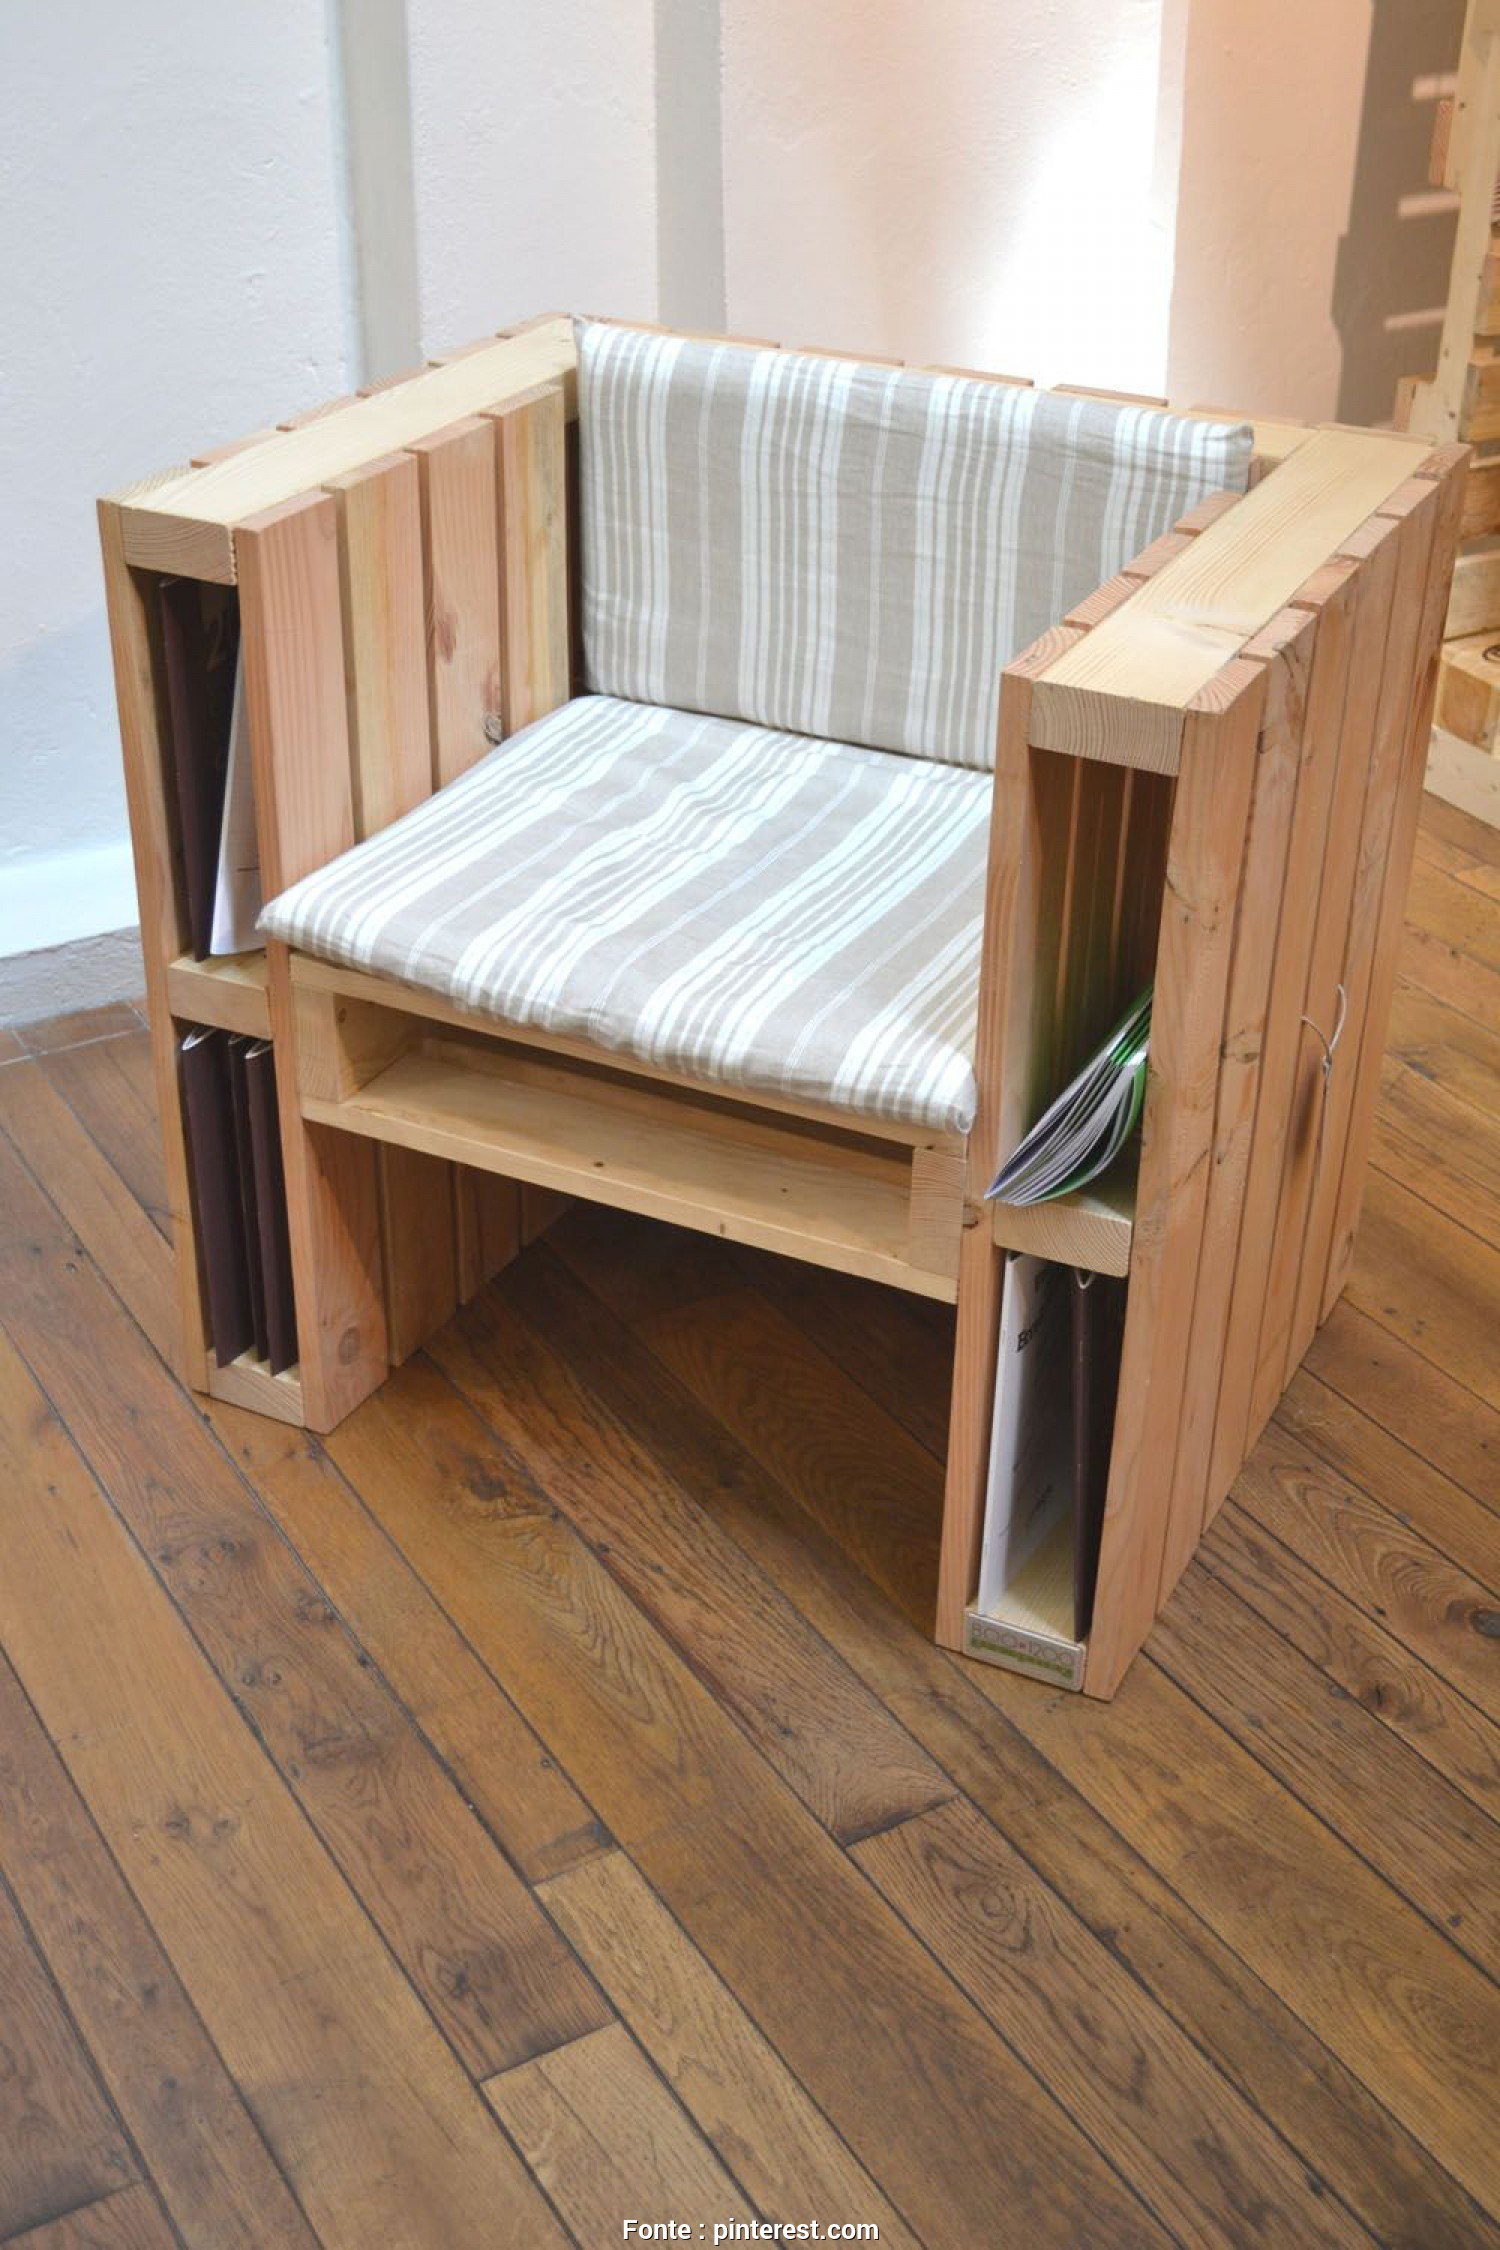 Pallet De Madeira Leroy Merlin, Costoso I, That This Reclaimed Pallet Project Allows, To Store Your Reading Materials In Your Reading Chair